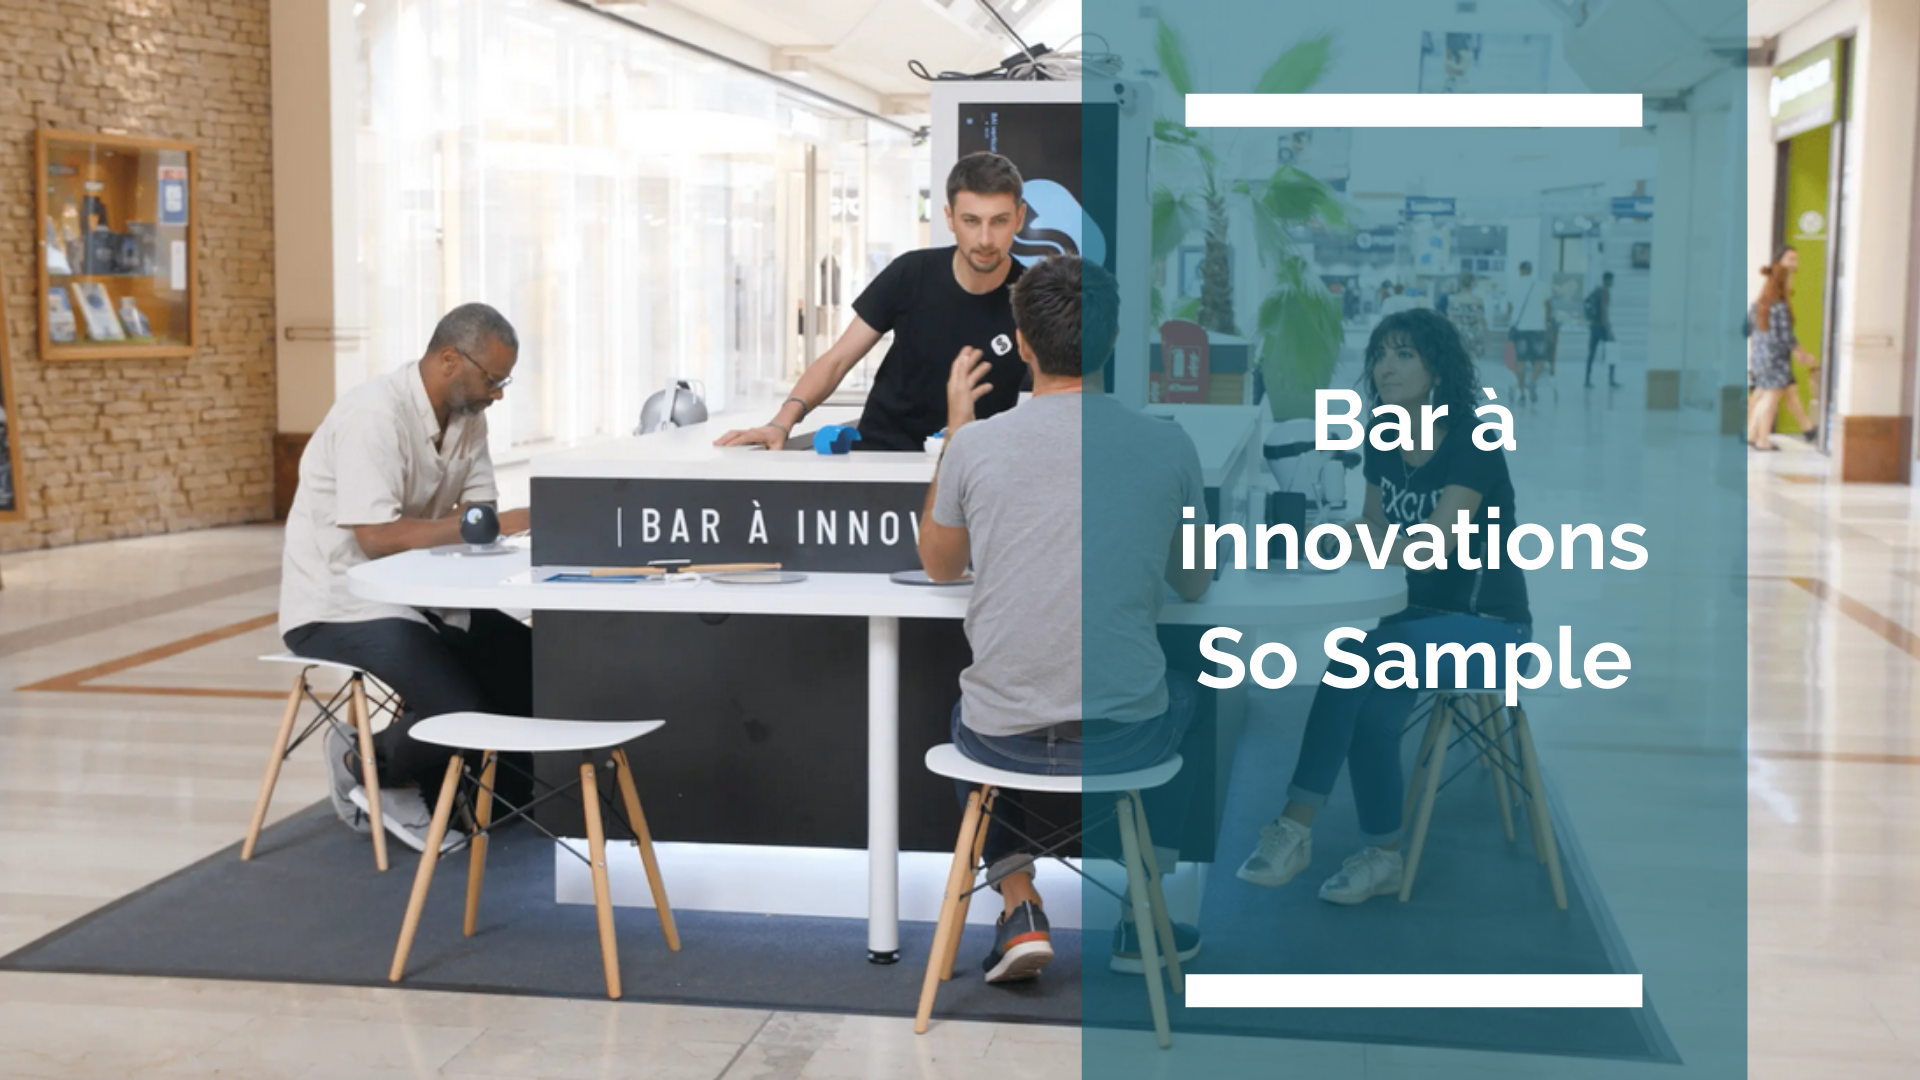 Le Bar à innovations So Sample, un concept unique et innovant